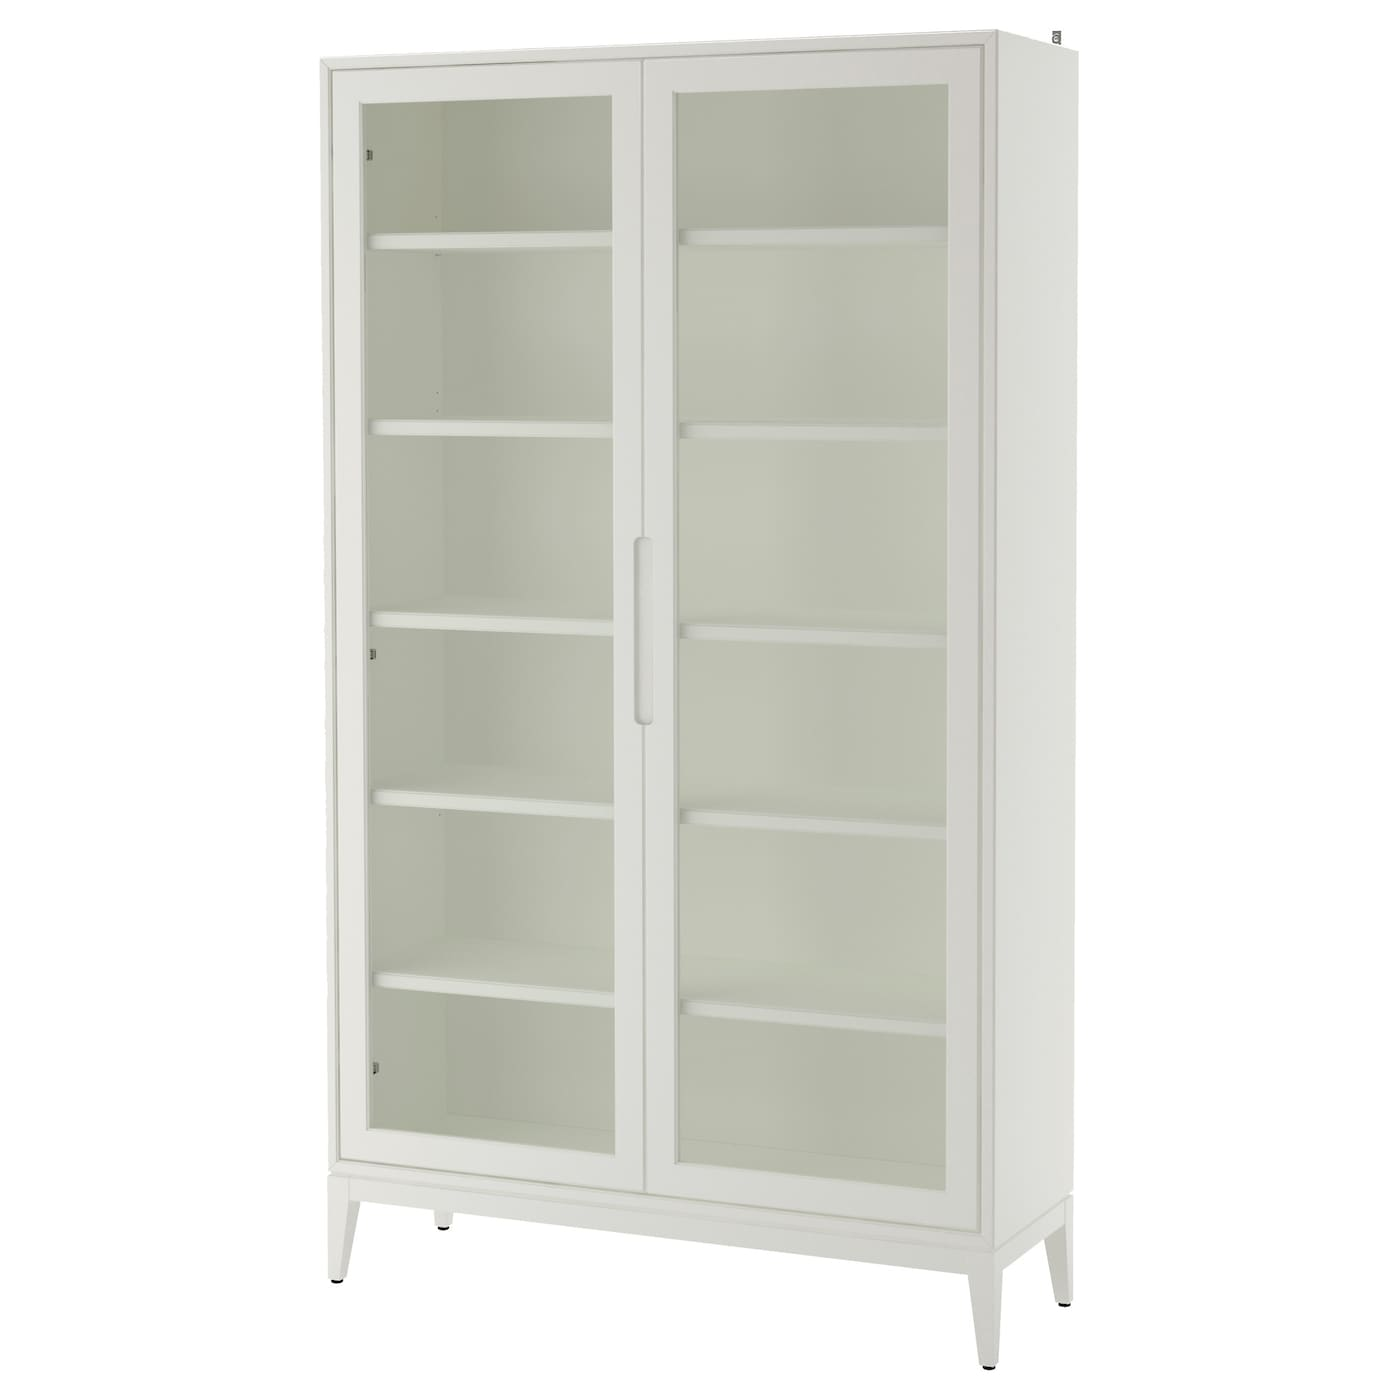 ikea storage cabinets display cabinets glass display cabinets ikea 29806